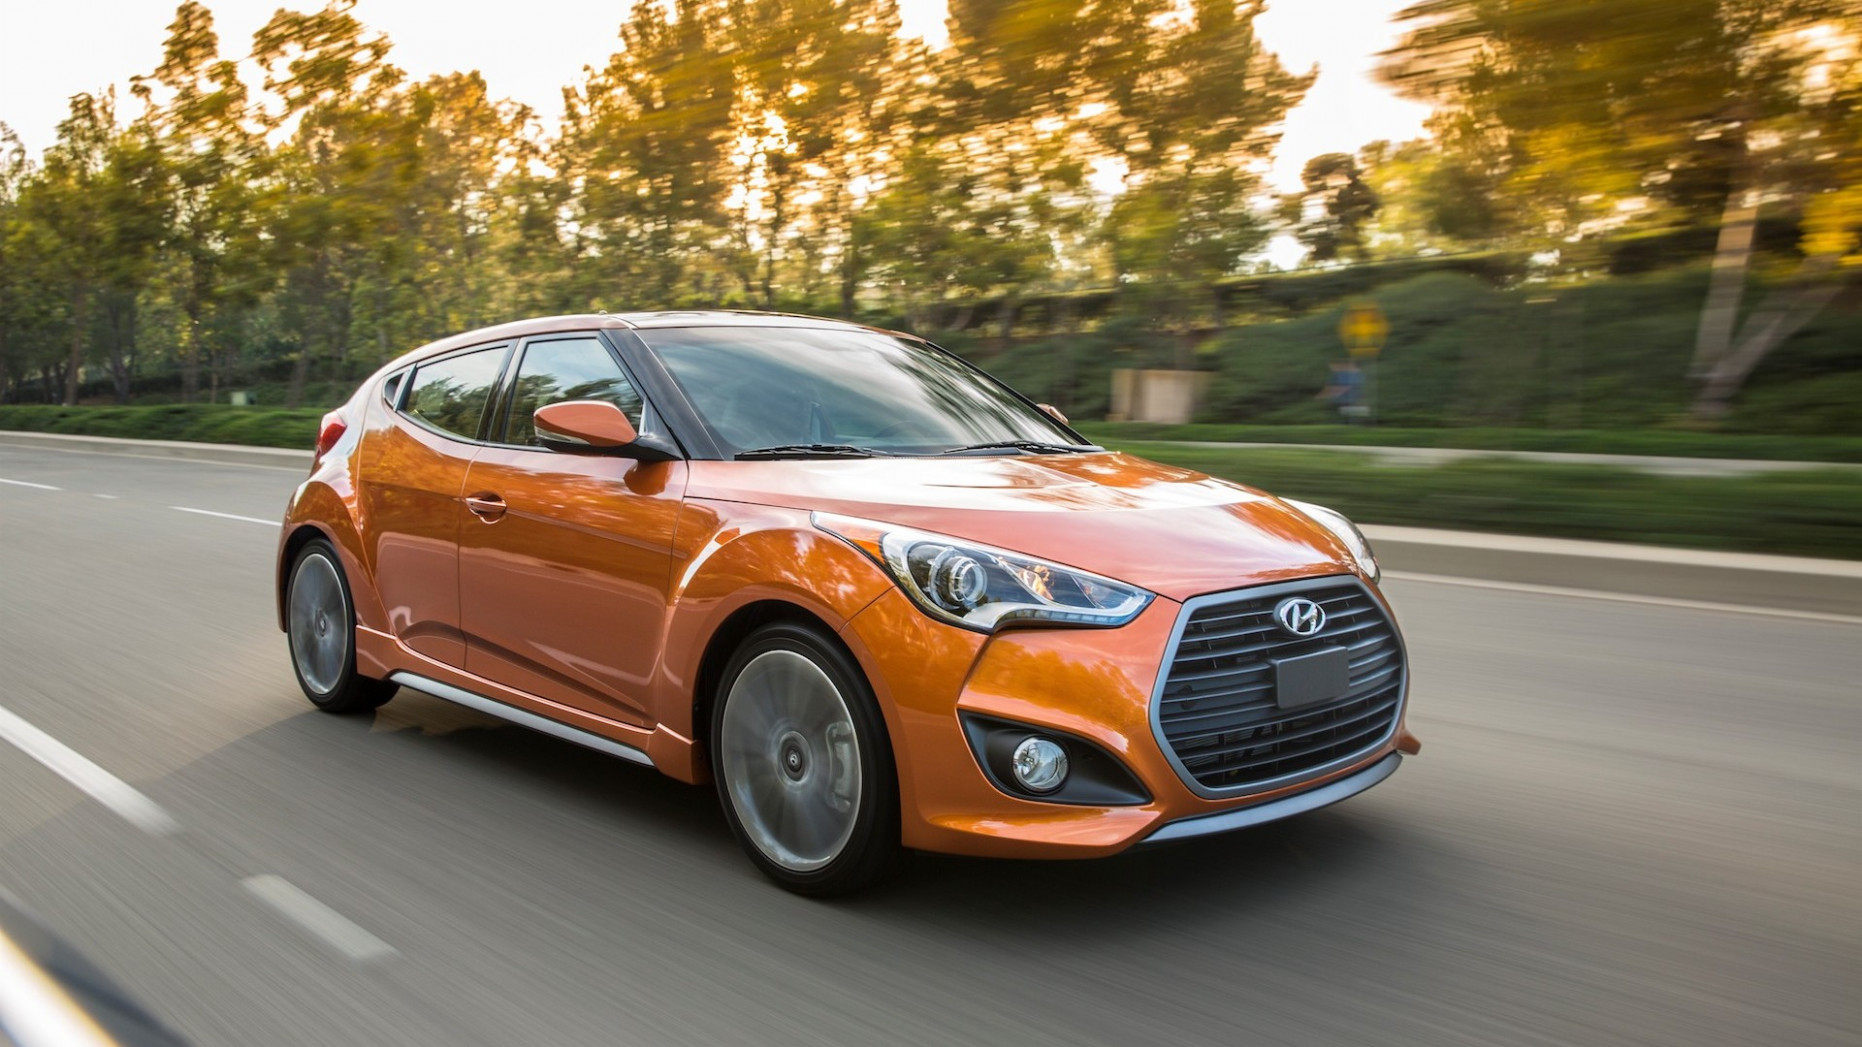 Reviews 2022 Hyundai Veloster